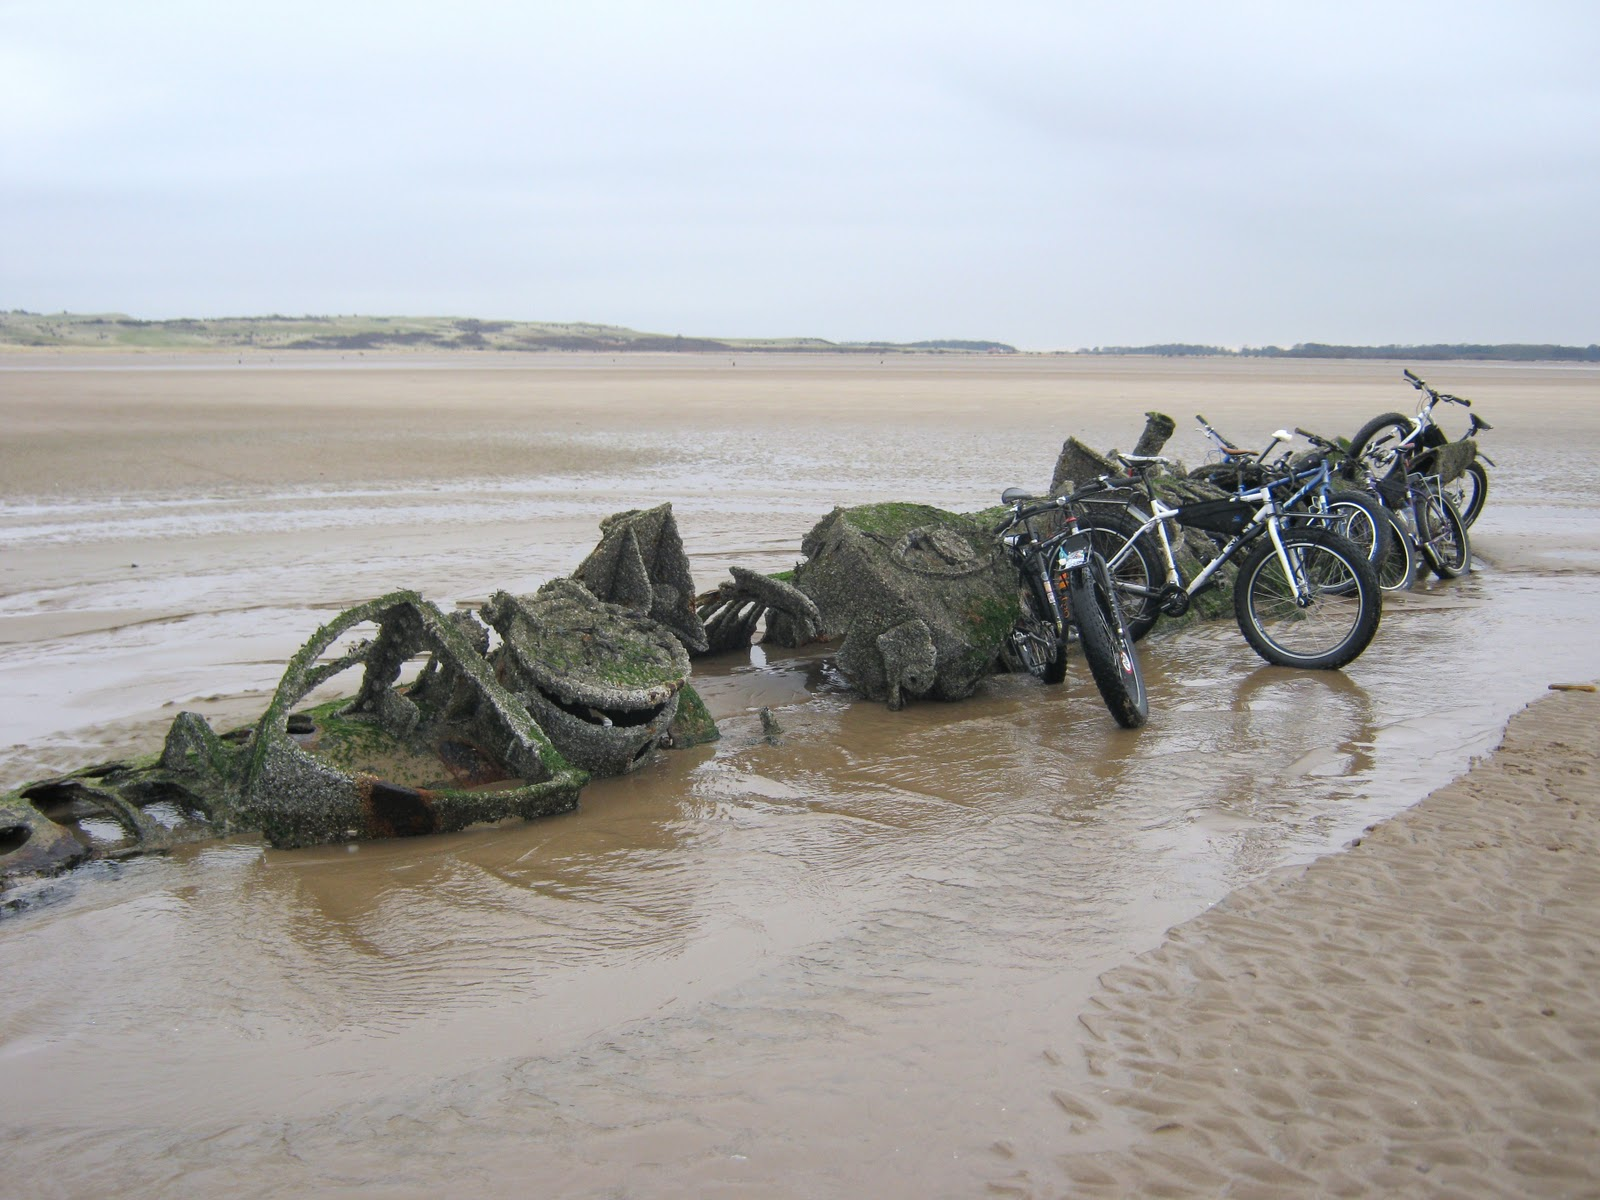 Used Mini Submarines For Sale http://coastkid.blogspot.com/2012/01/ww2-xt-class-submarine-wrecks-aberlady.html